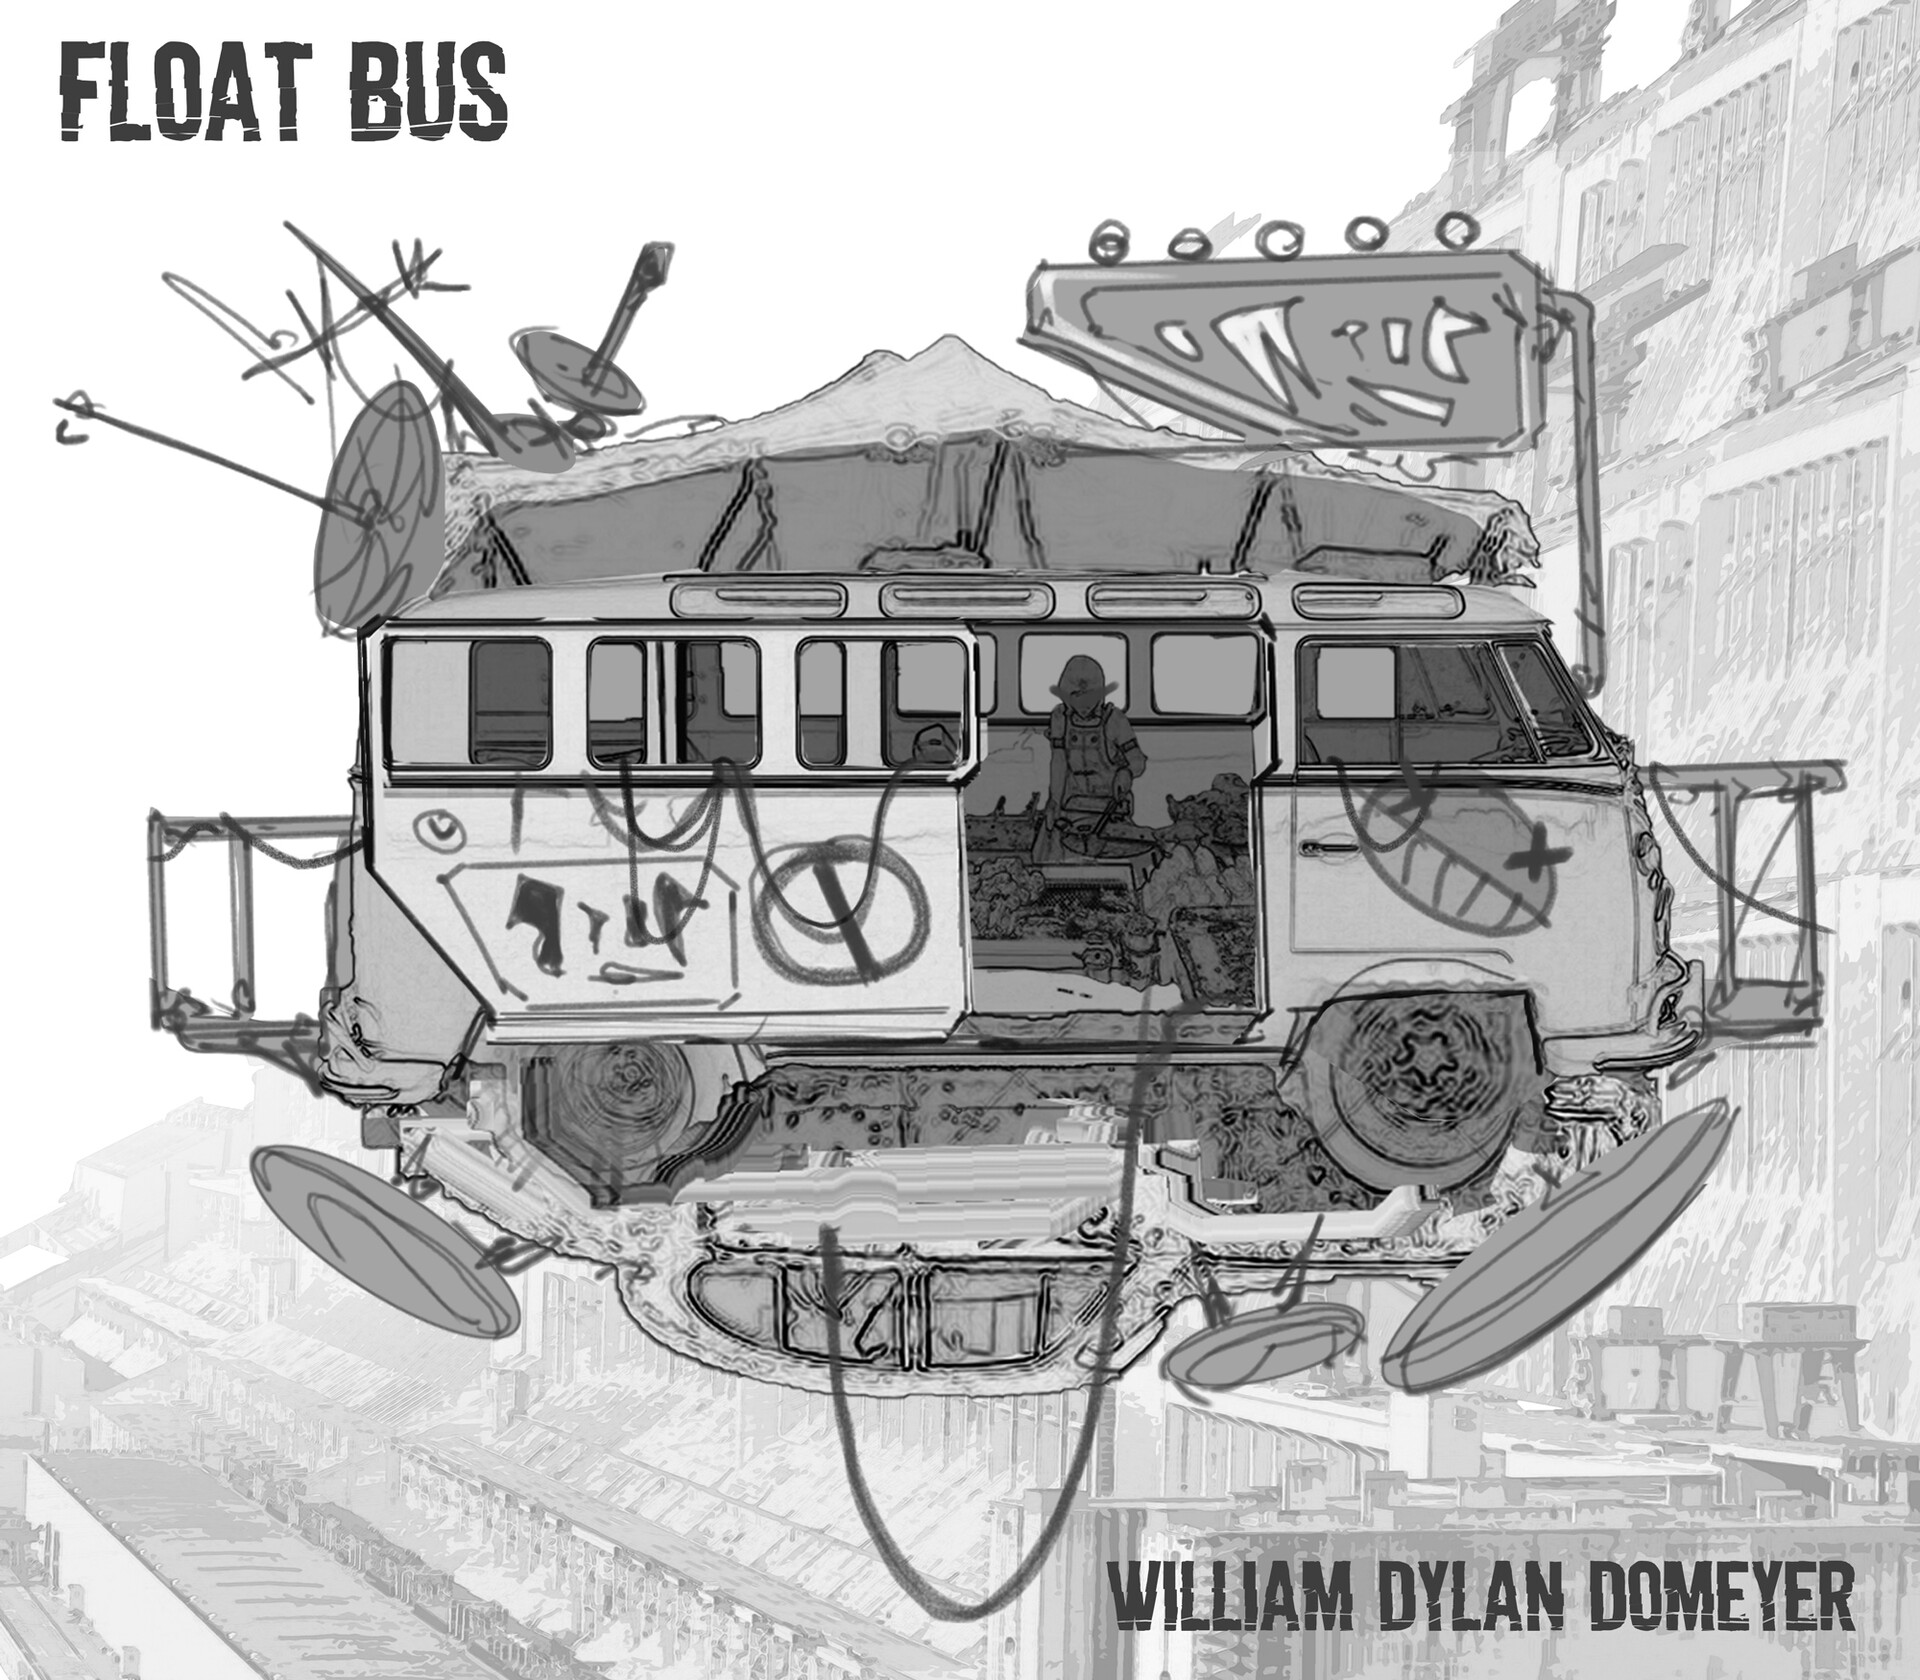 william-dylan-domeyer-bus-cocenpt.jpg?15